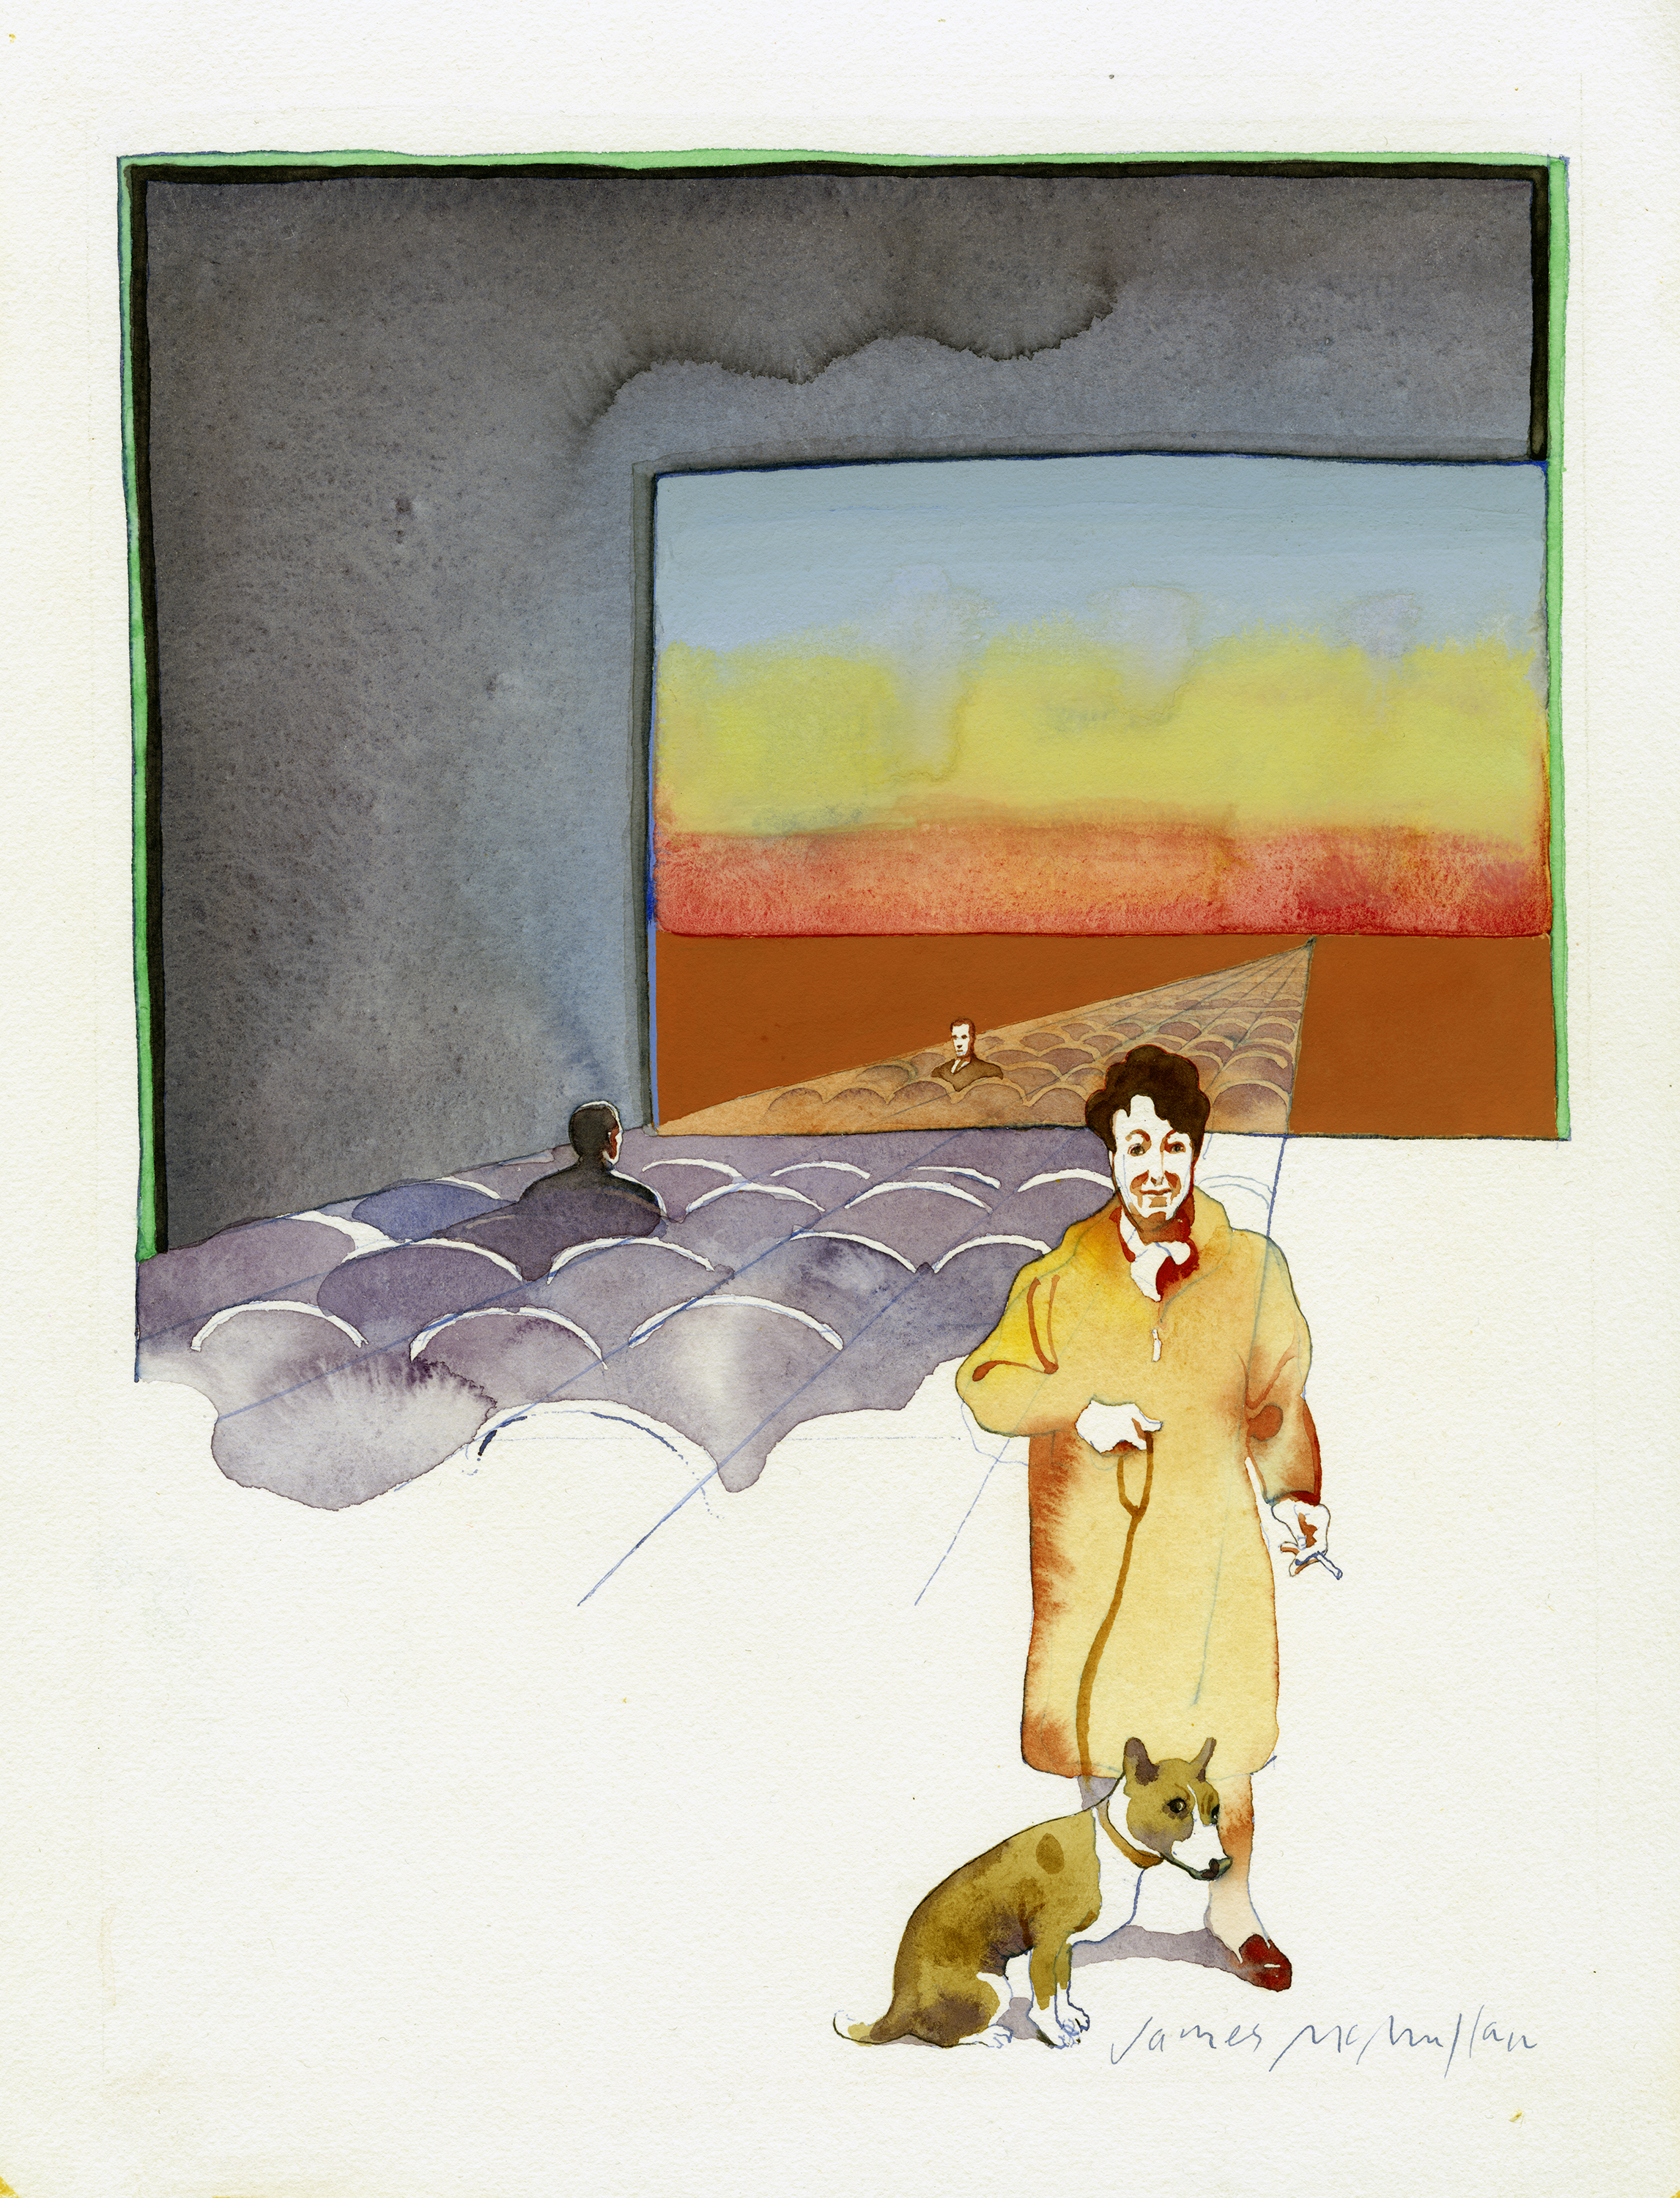 Watercolor painting of a lone man in a movie theater. A person in a yellow coat is in the foreground with their dog.